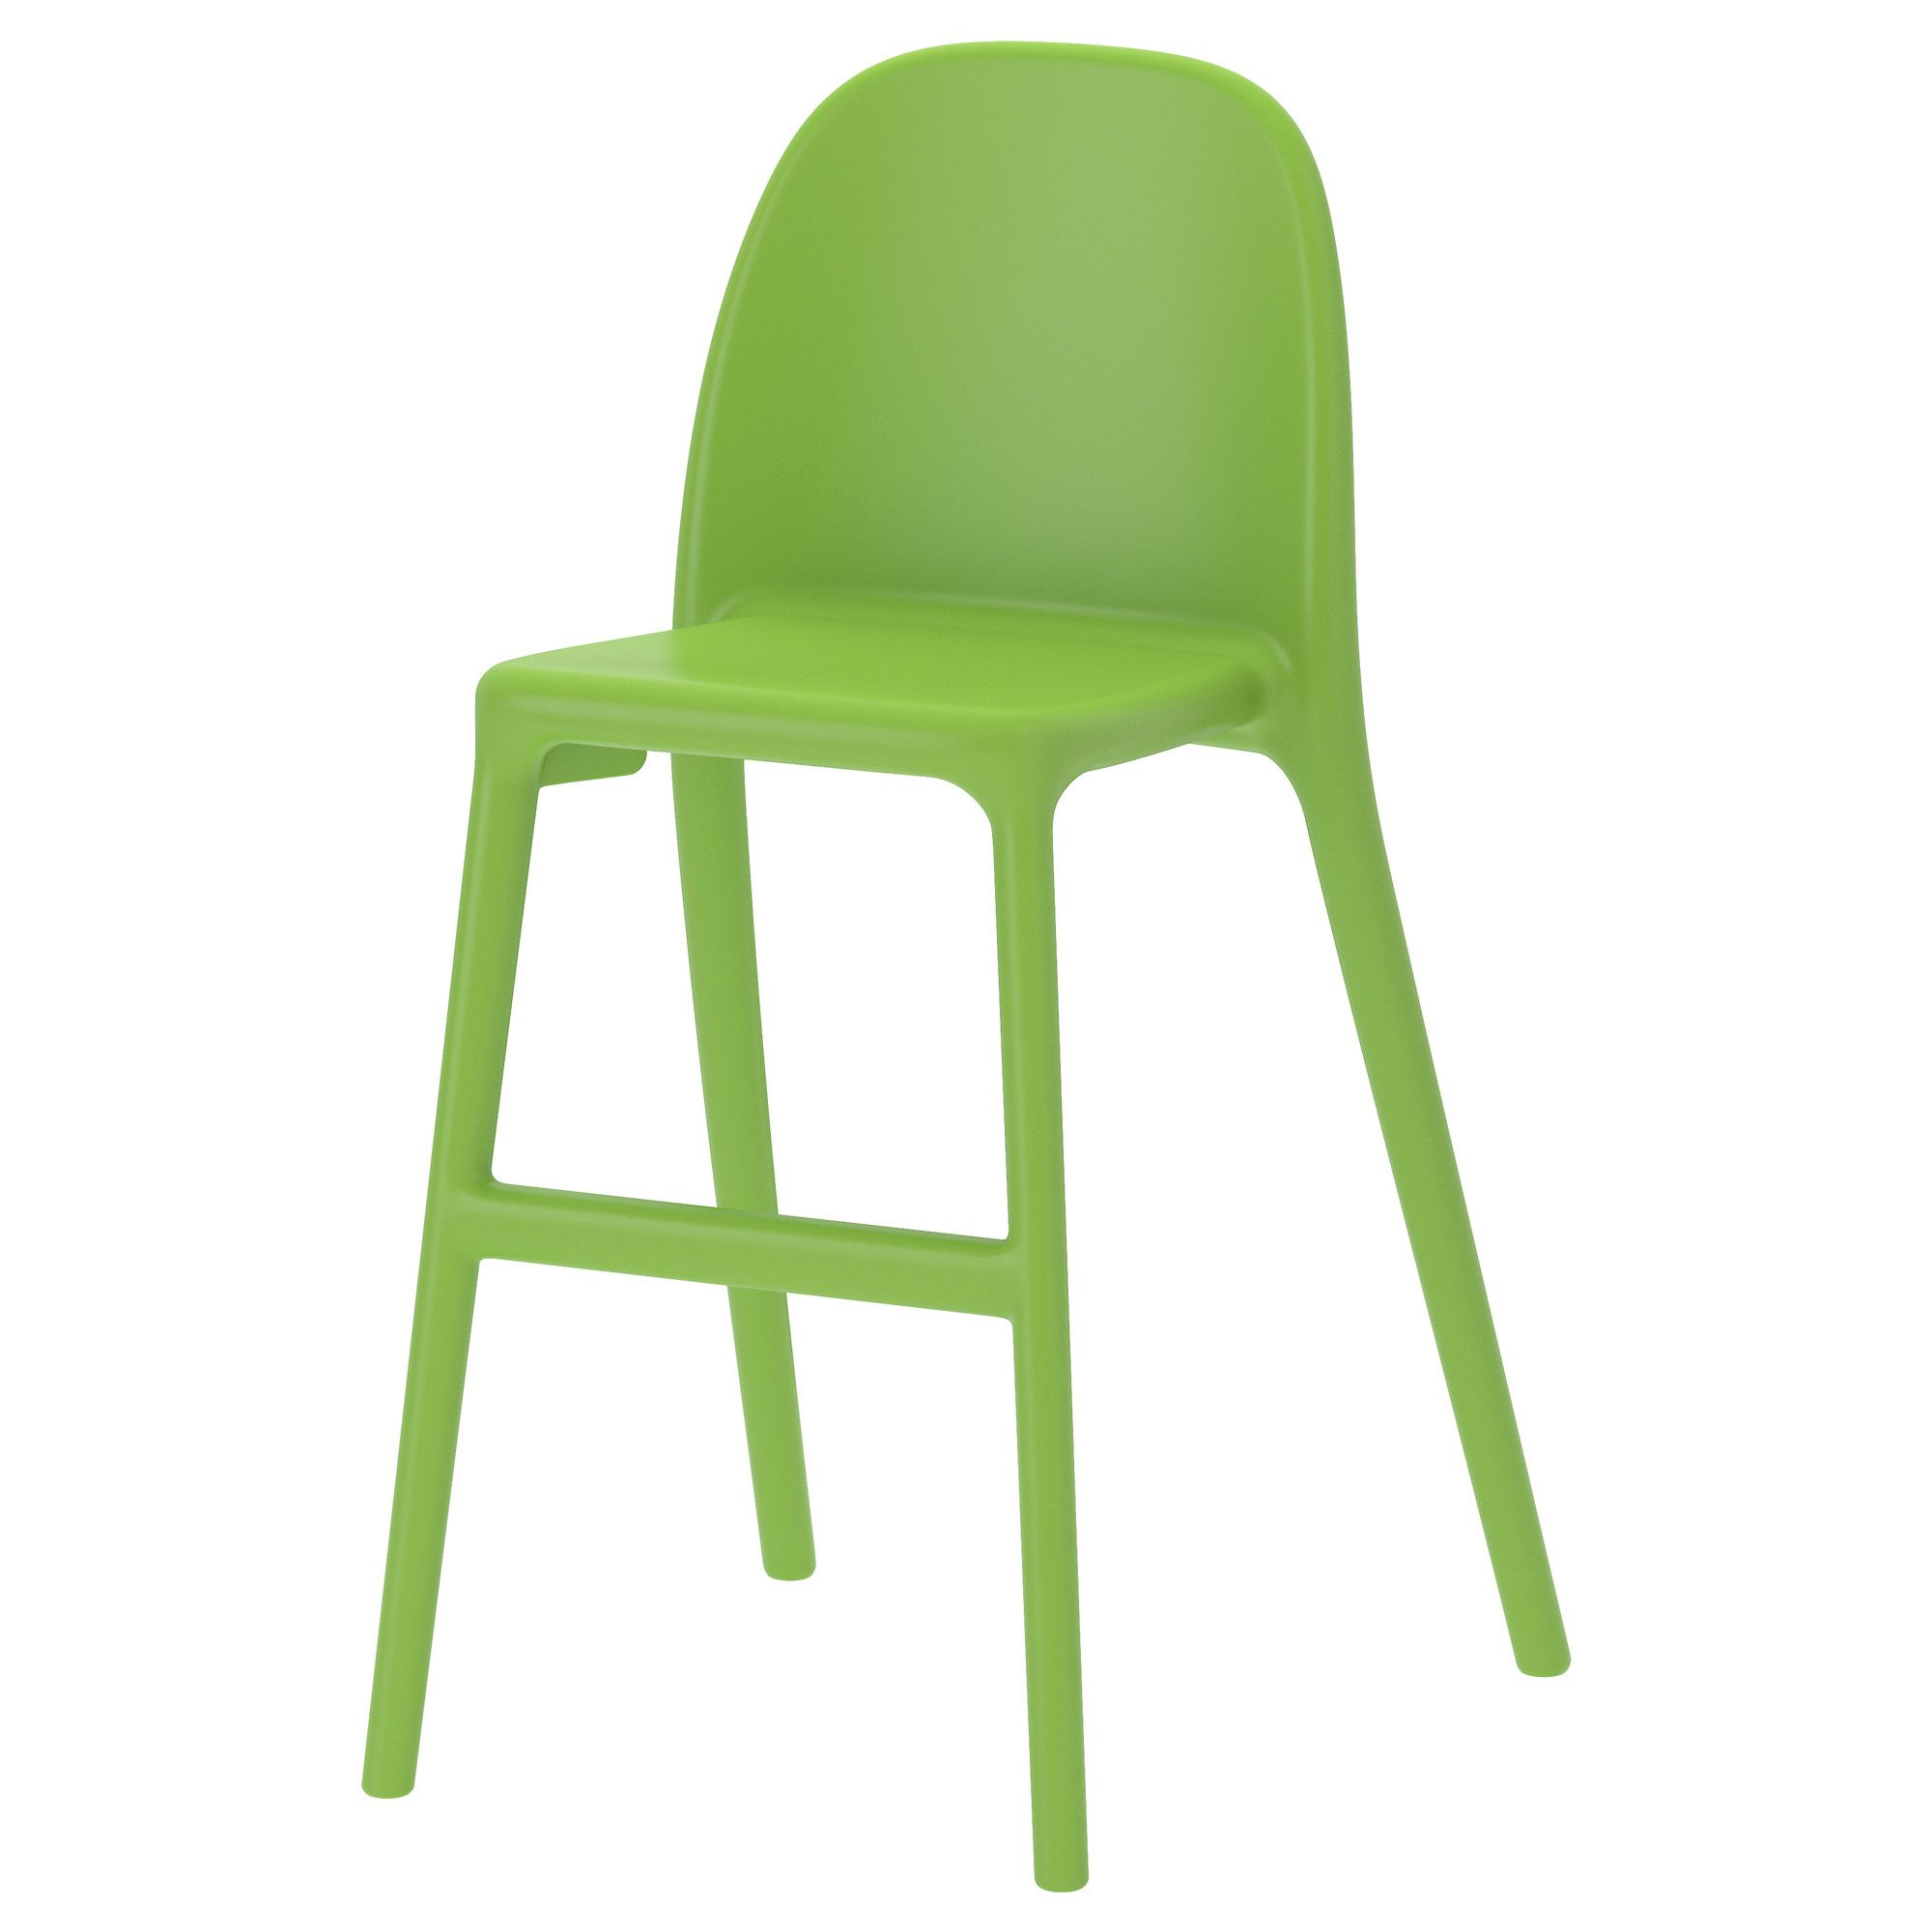 Ikea Us Furniture And Home Furnishings Ikea Junior Chair Ikea Dining Green Chair